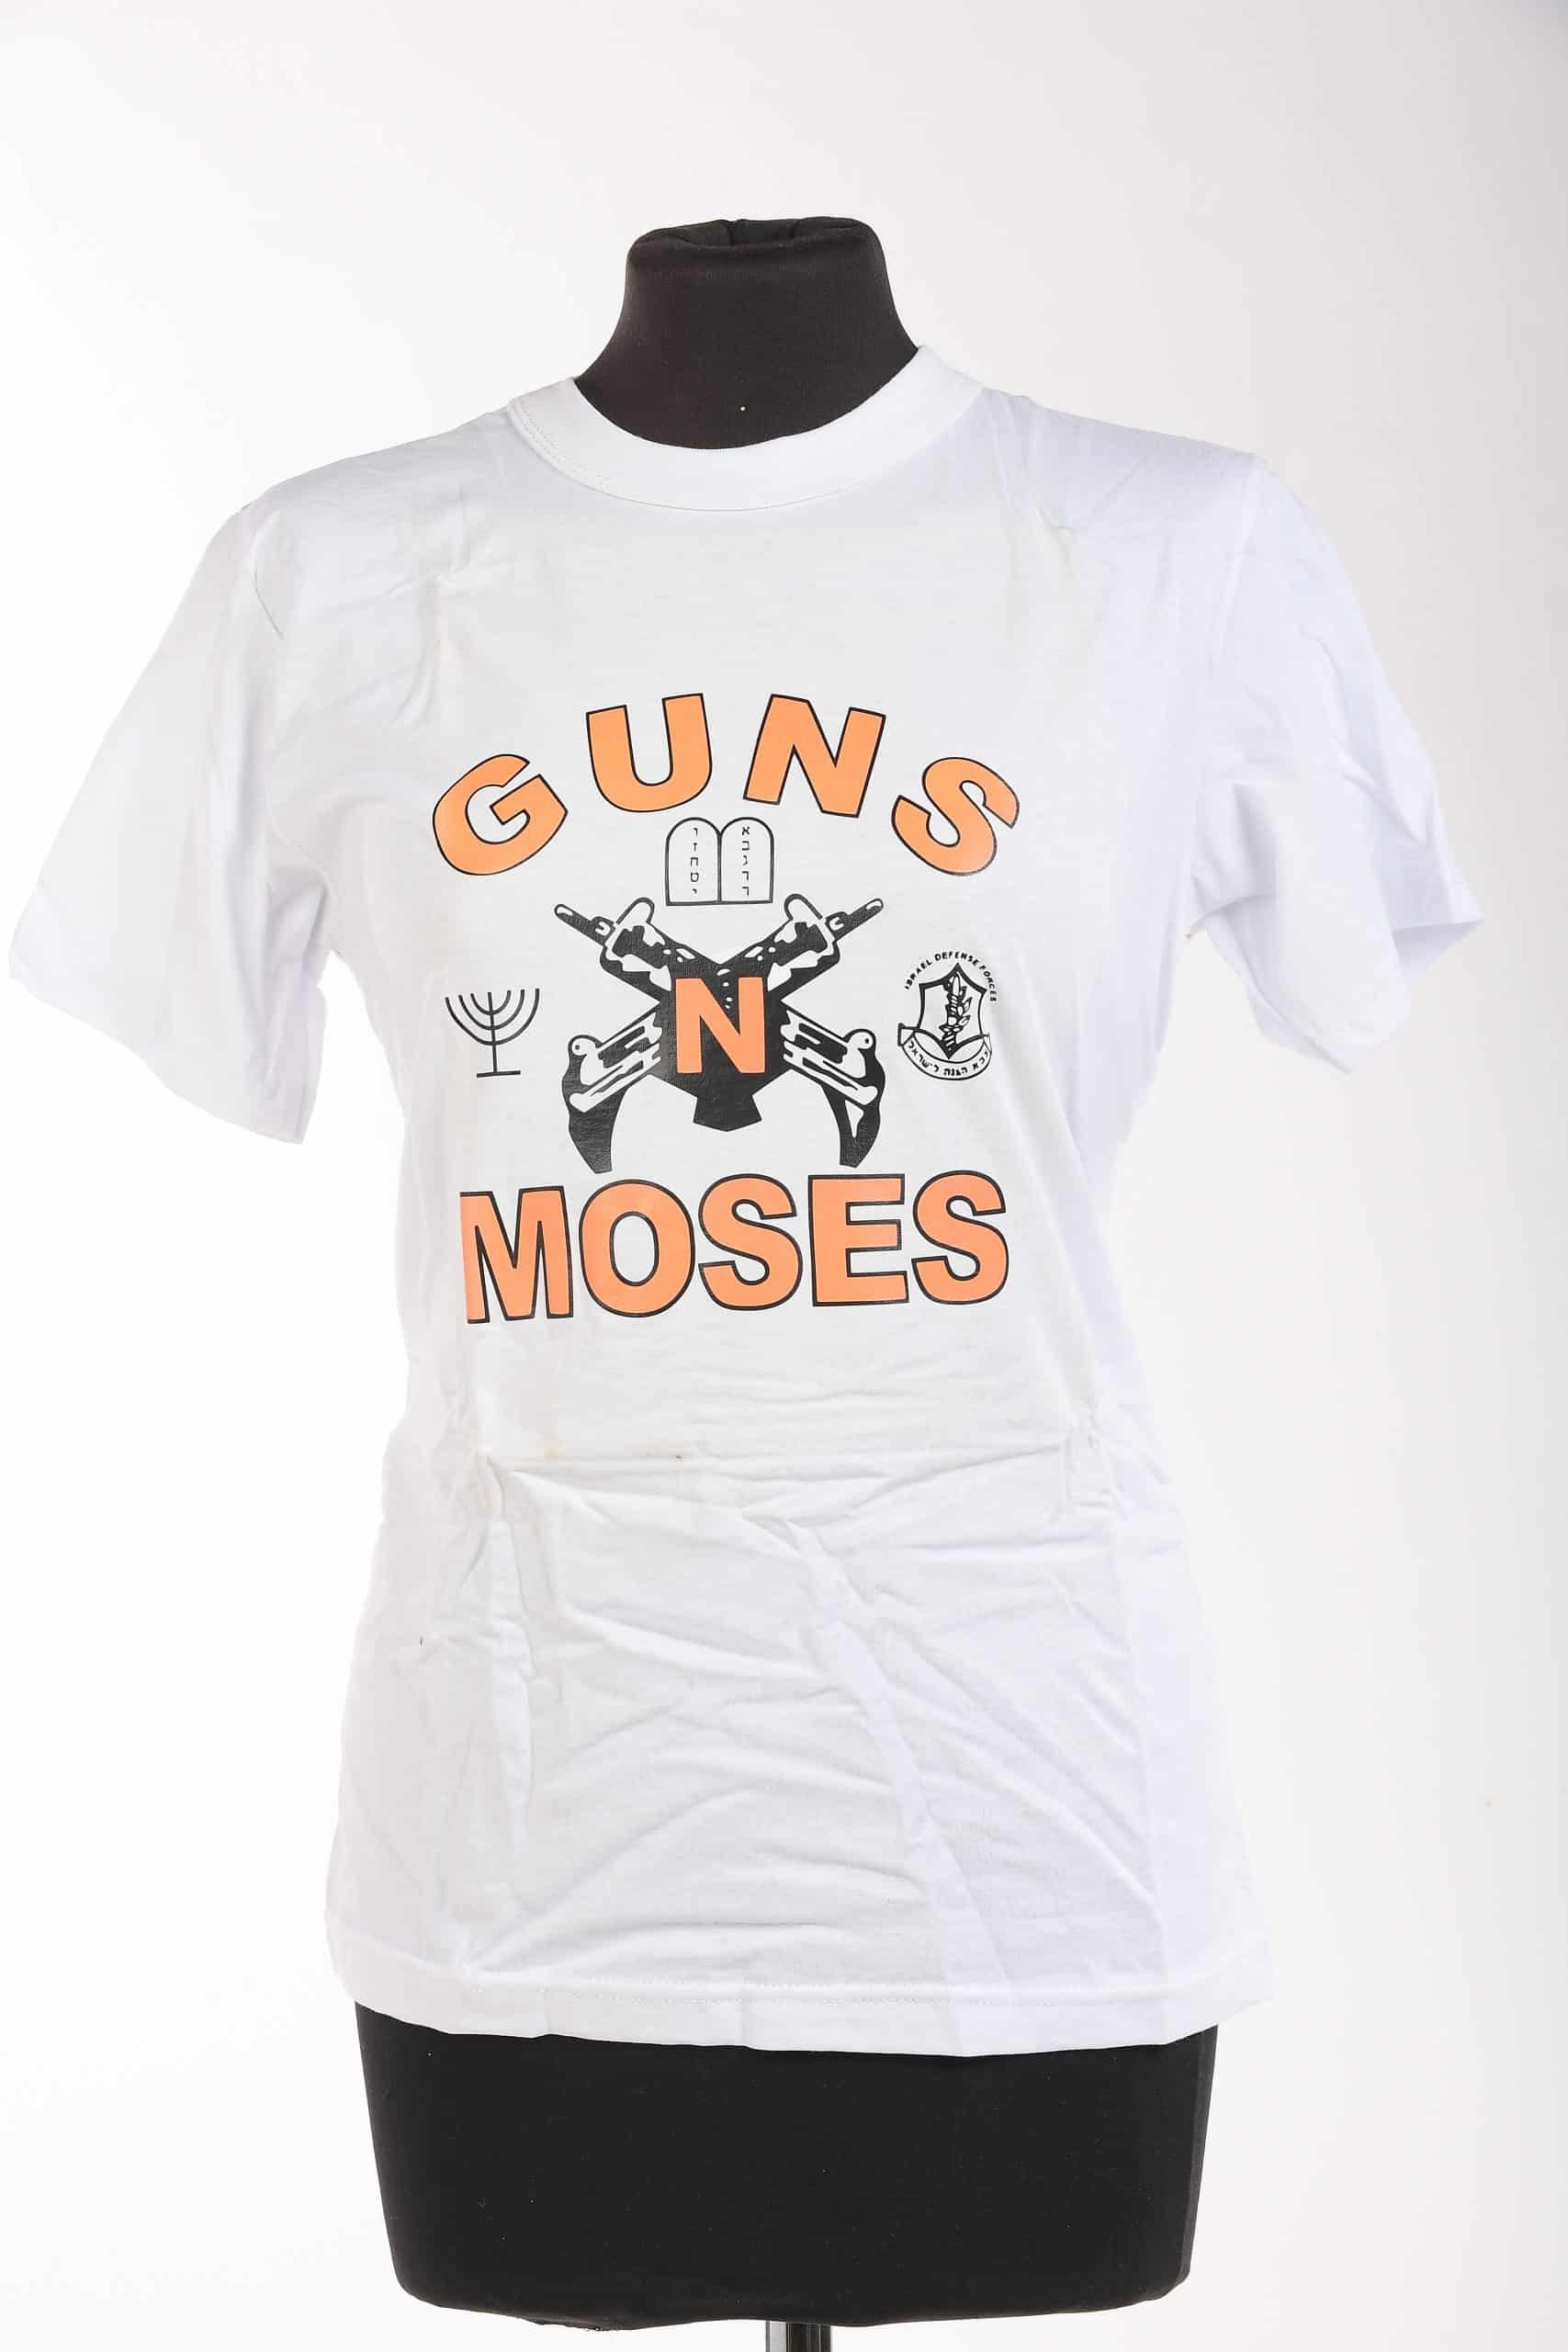 Holy Land T Shirts - Guns and Moses (S-XXL)